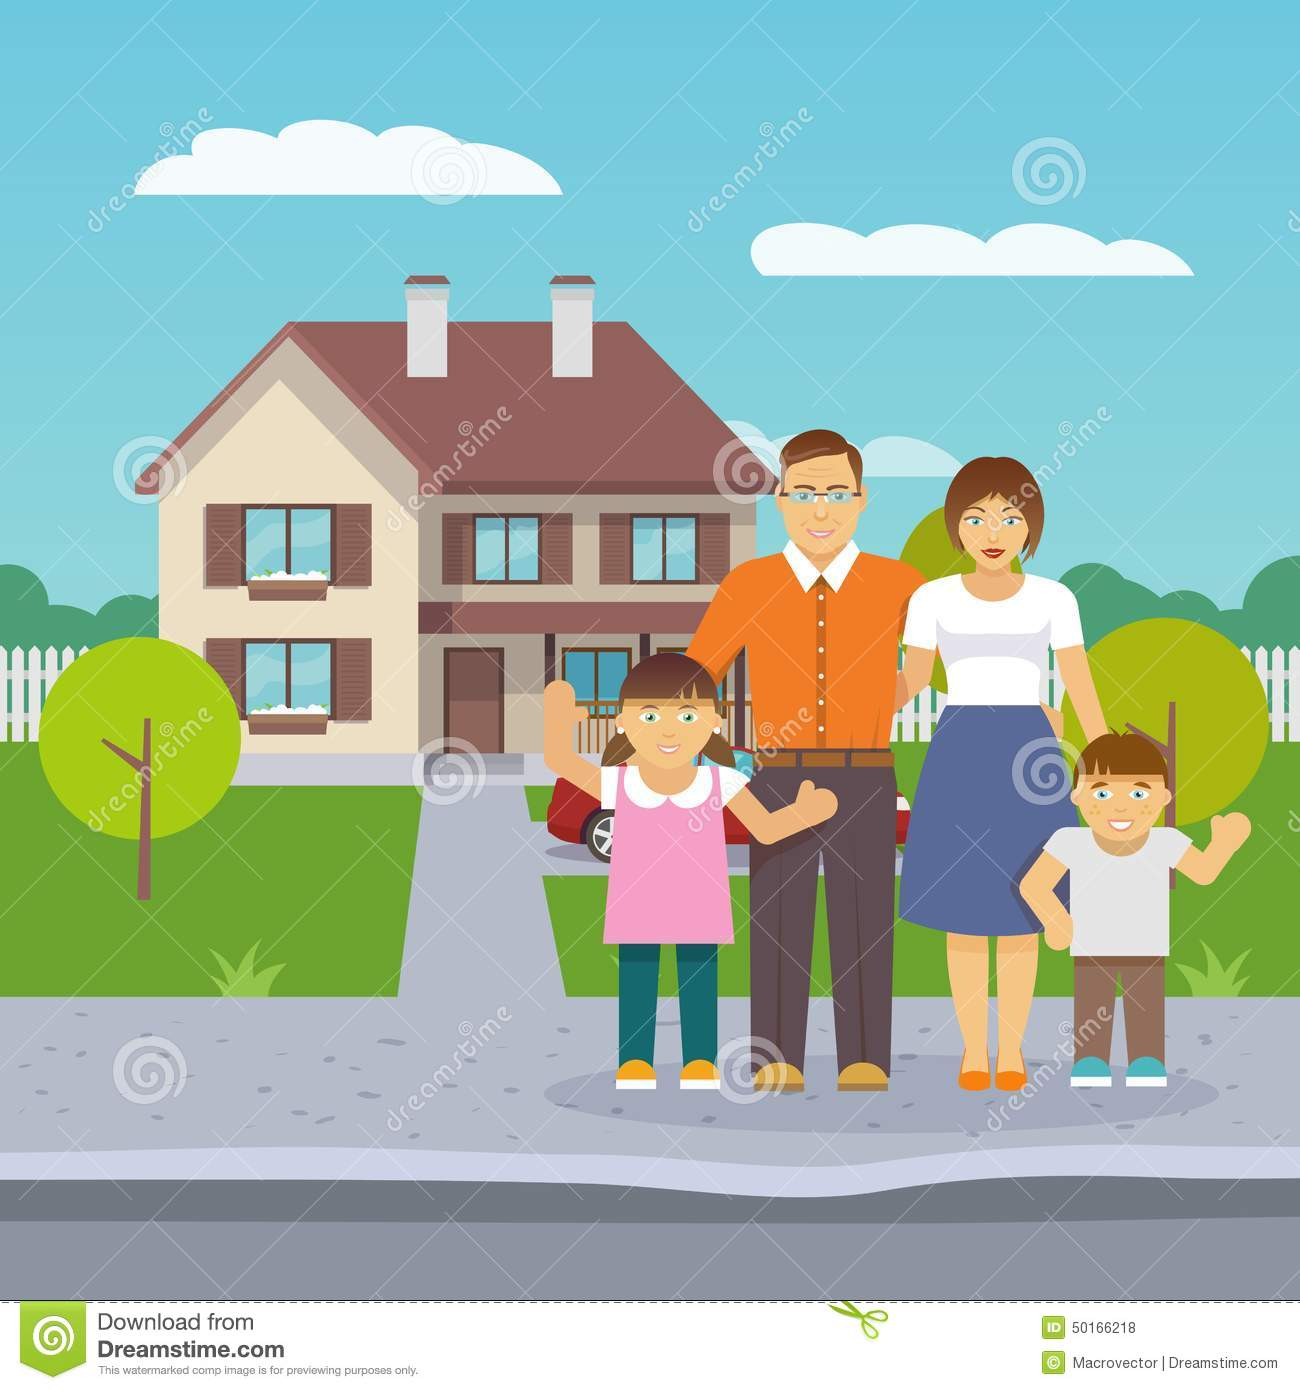 Family House Flat Stock Vector - Image: 50166218